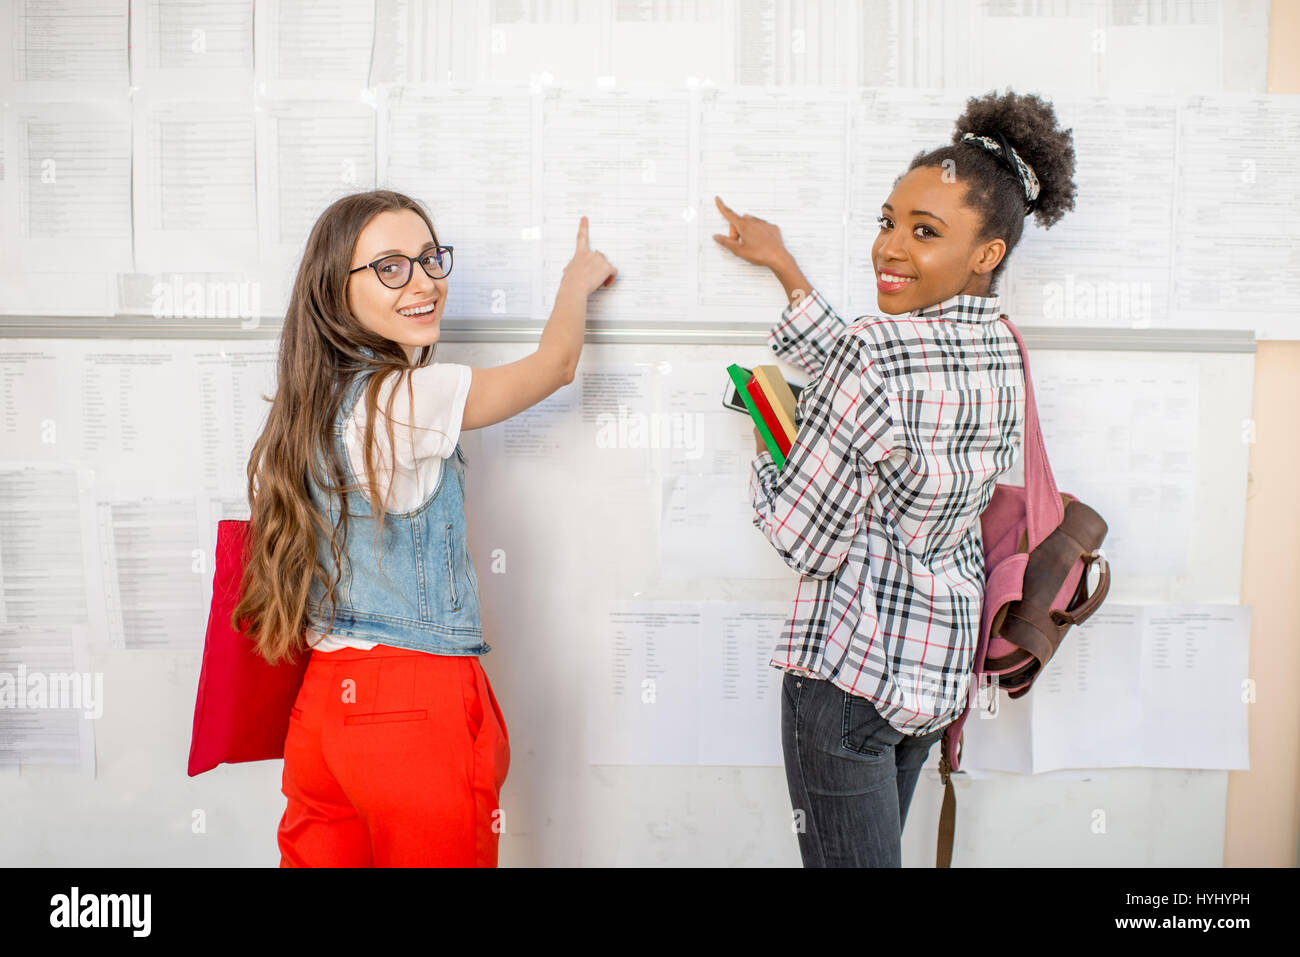 Students near the lesson schedule at the university - Stock Image